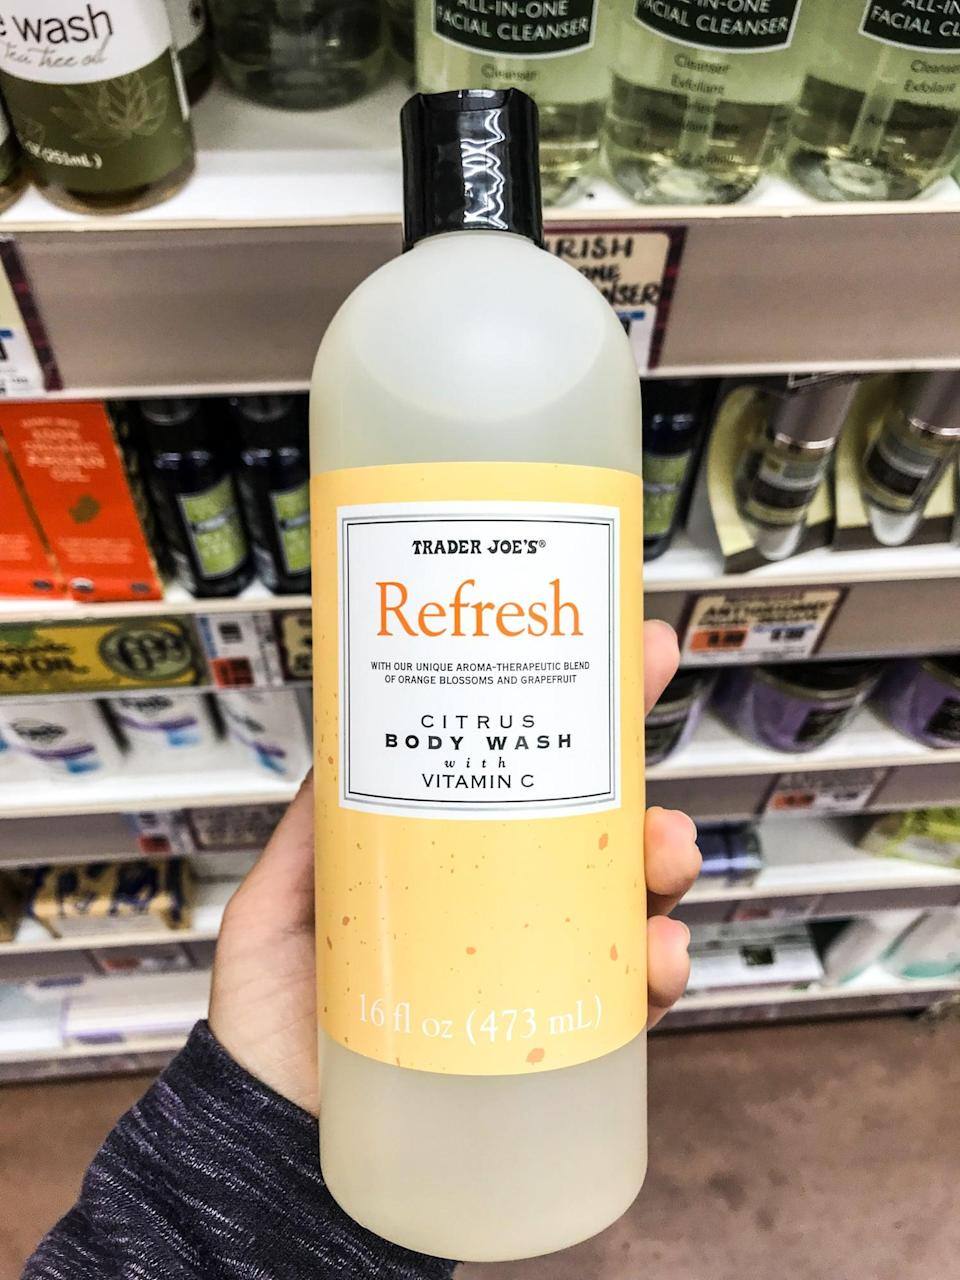 <p>Refresh is right. Trader Joe's citrus body wash hits all the Spring notes with a dash of Vitamin C. A fairly sizable bottle for only $3 will get you through the upcoming season. </p>